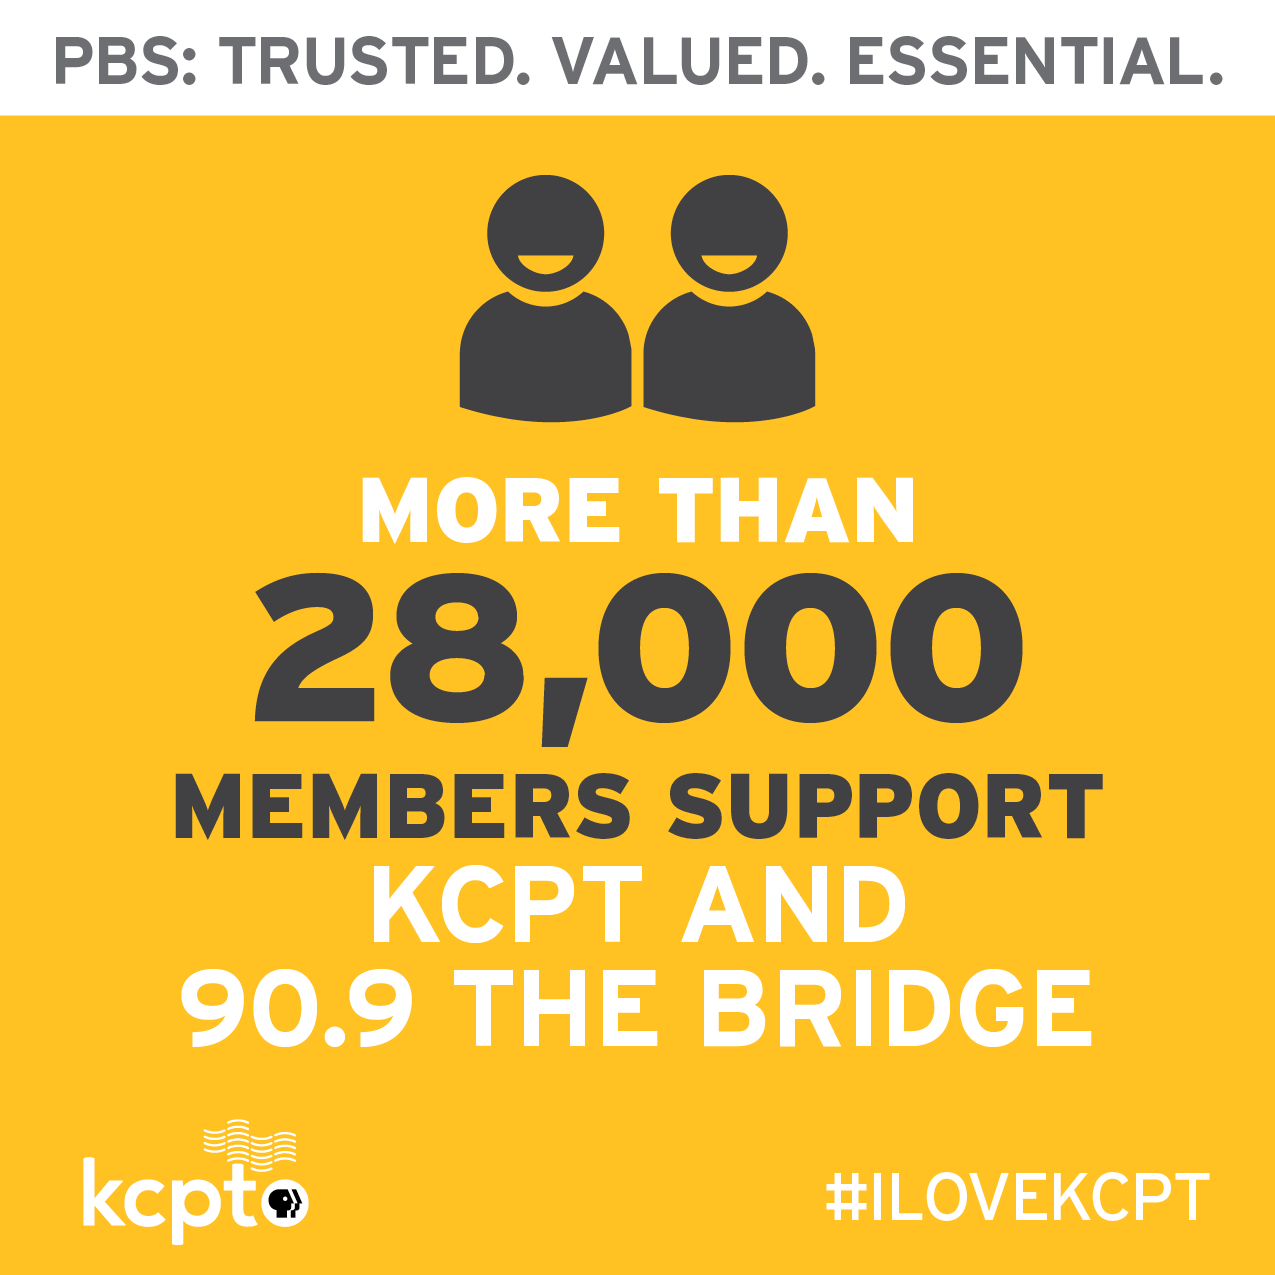 More than 28,000 members support KCPT and 90.9 The Bridge.